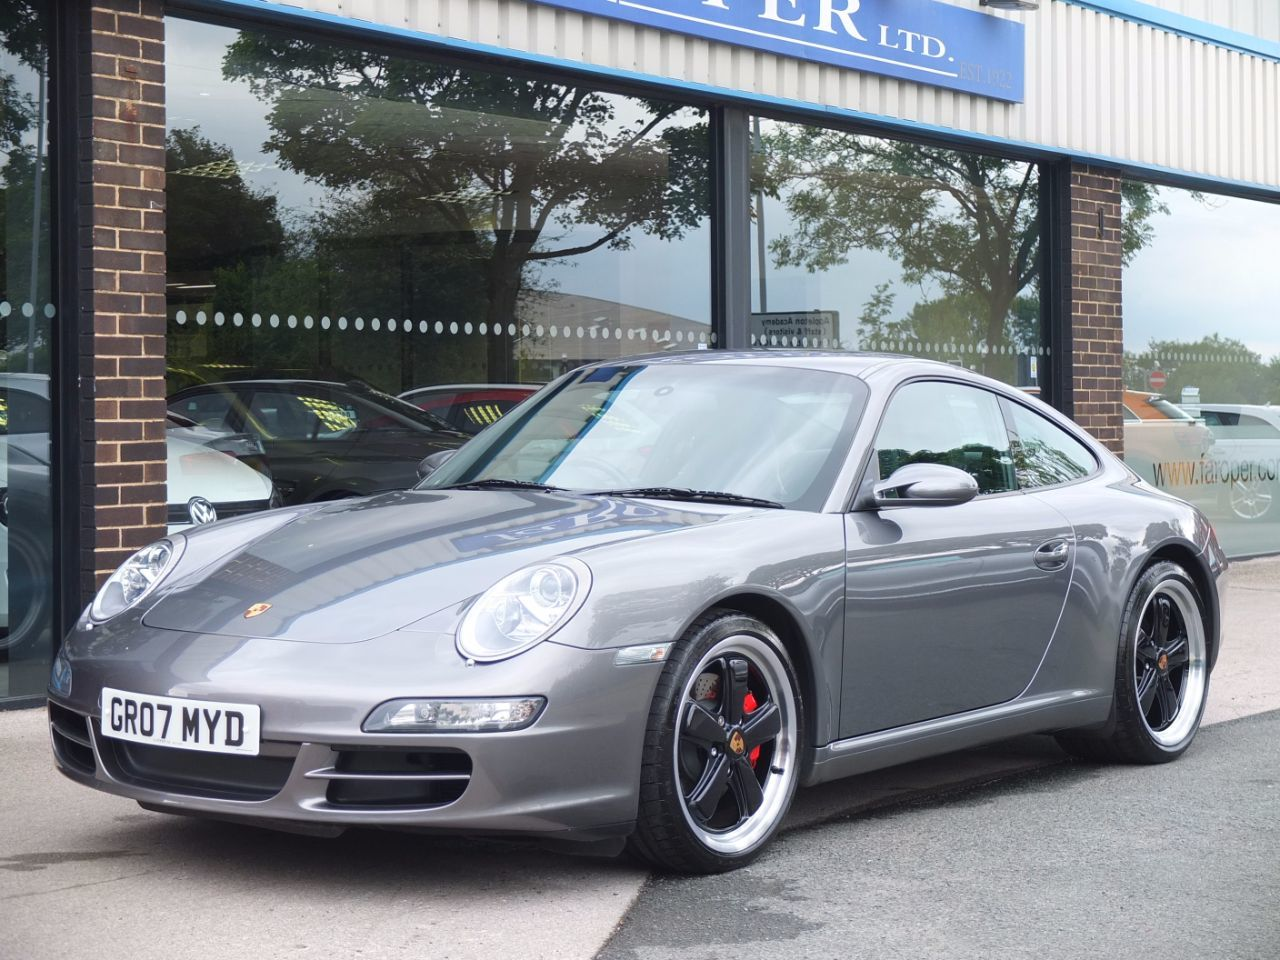 Porsche 911 997 Carrera 3.8 S Coupe Petrol Meteor Grey MetallicPorsche 911 997 Carrera 3.8 S Coupe Petrol Meteor Grey Metallic at fa Roper Ltd Bradford